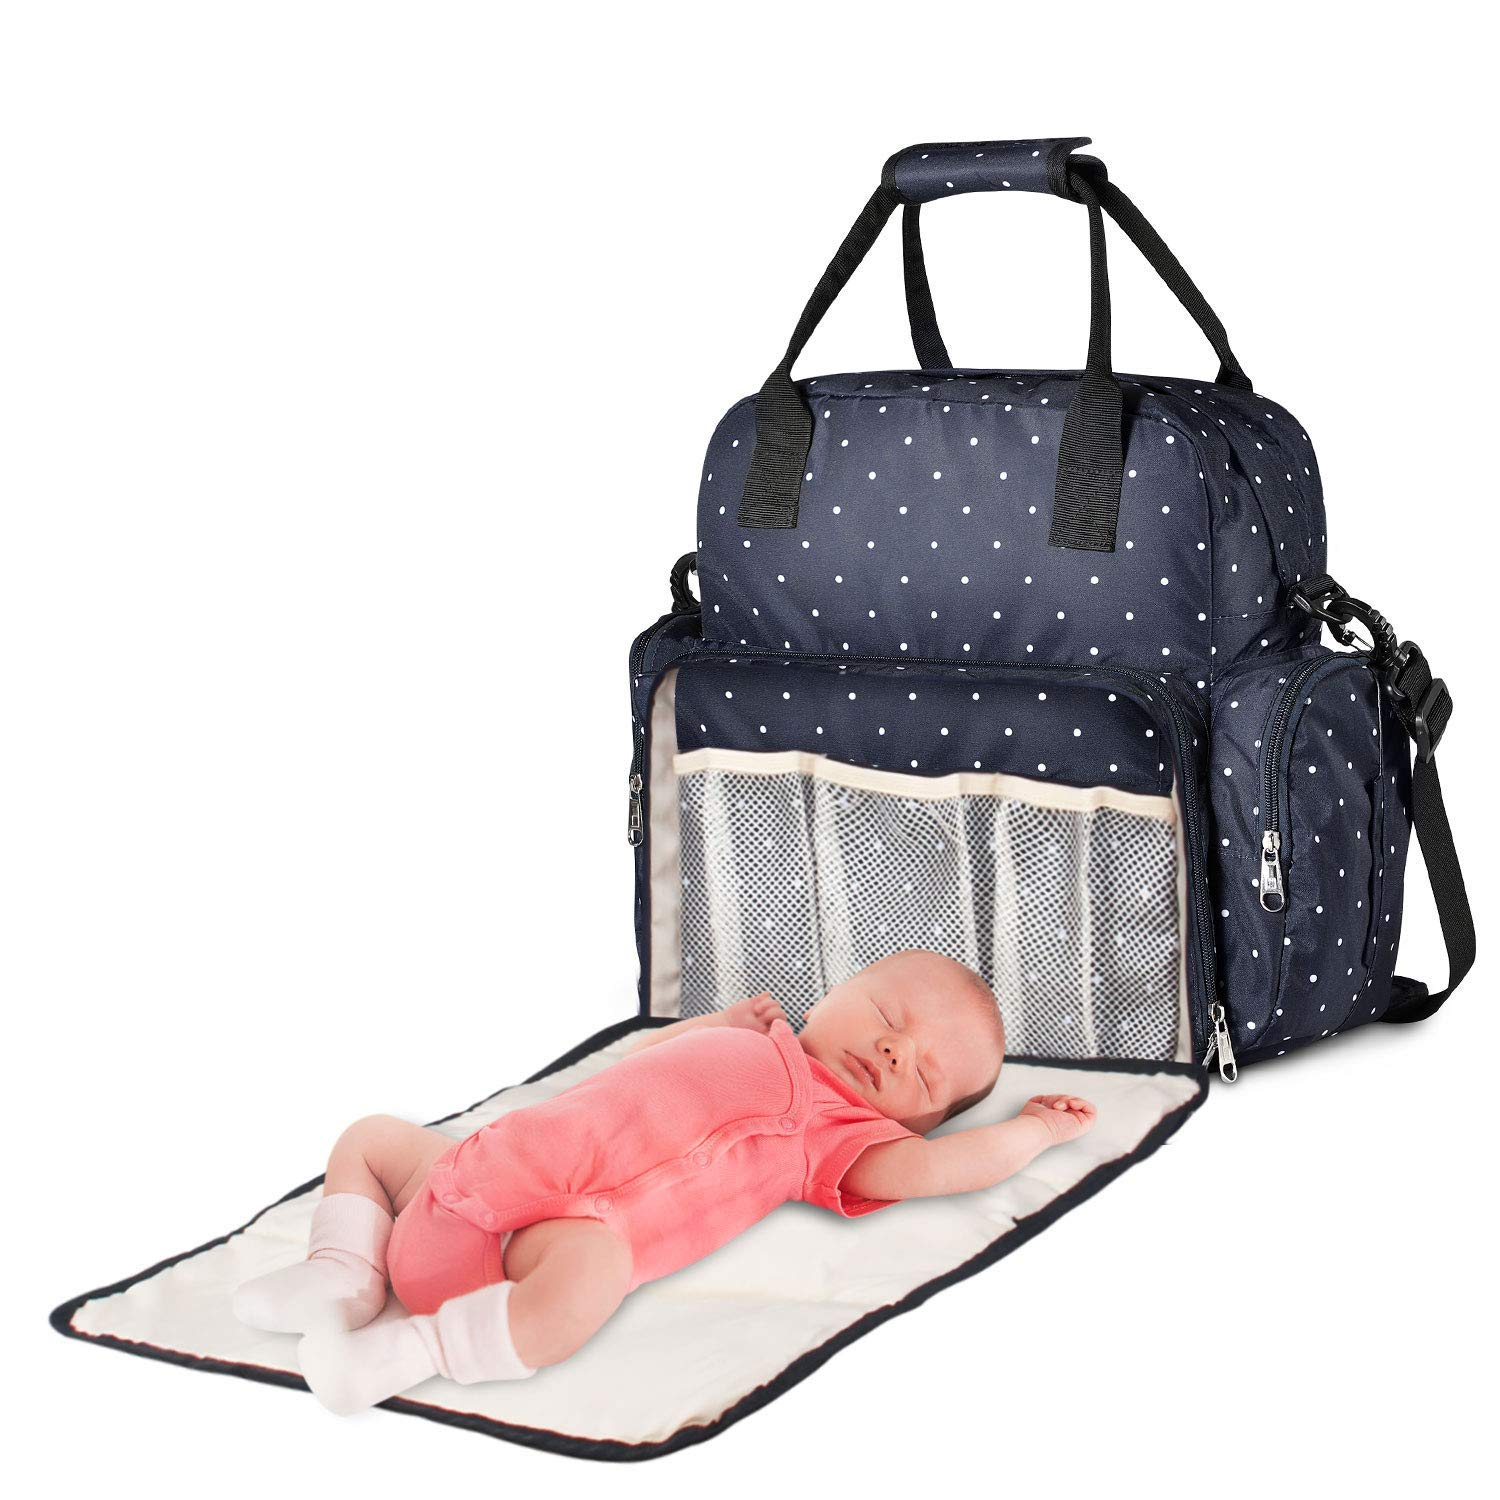 Diaper Bag Backpack, Baby Bag with Changing Pad, Waterproof Multifunction Nappy Bag,Maternity Travel Back Pack for Mom&Dad with Insulated Pockets Blue